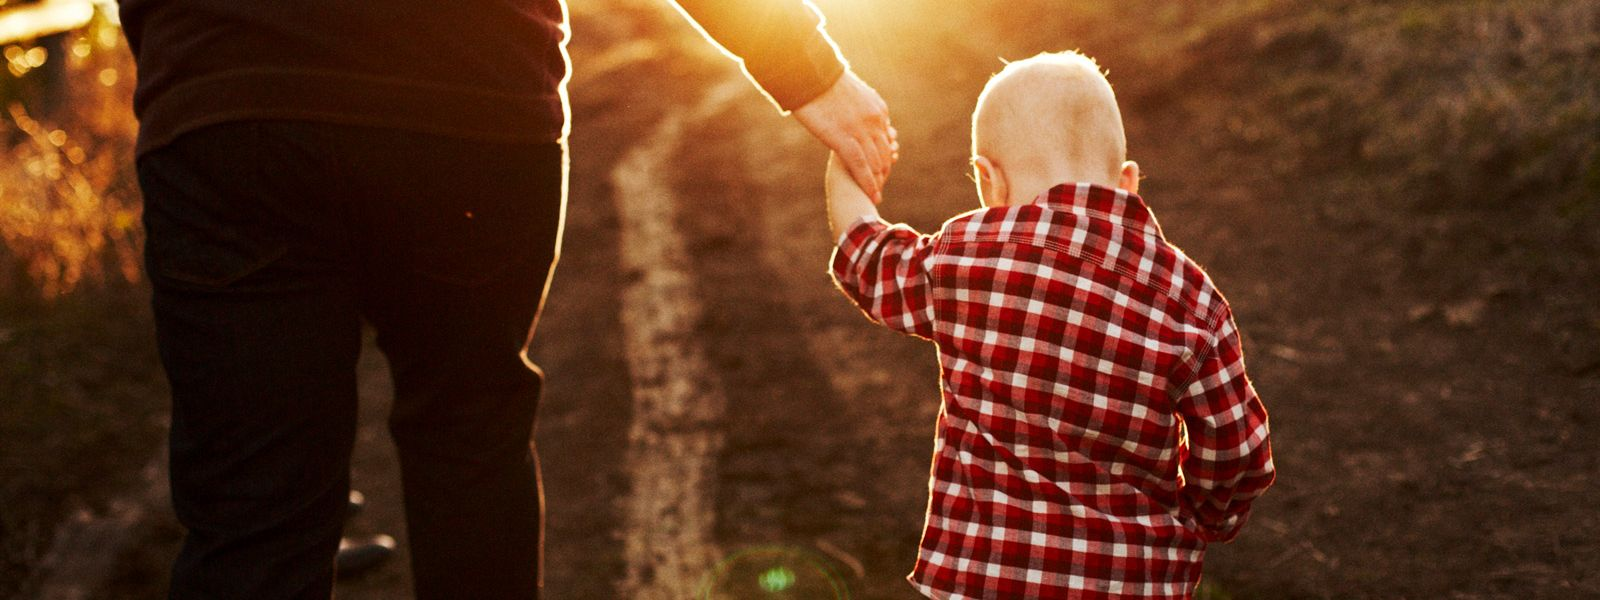 Father's Day: How to Model God's Love and Justice